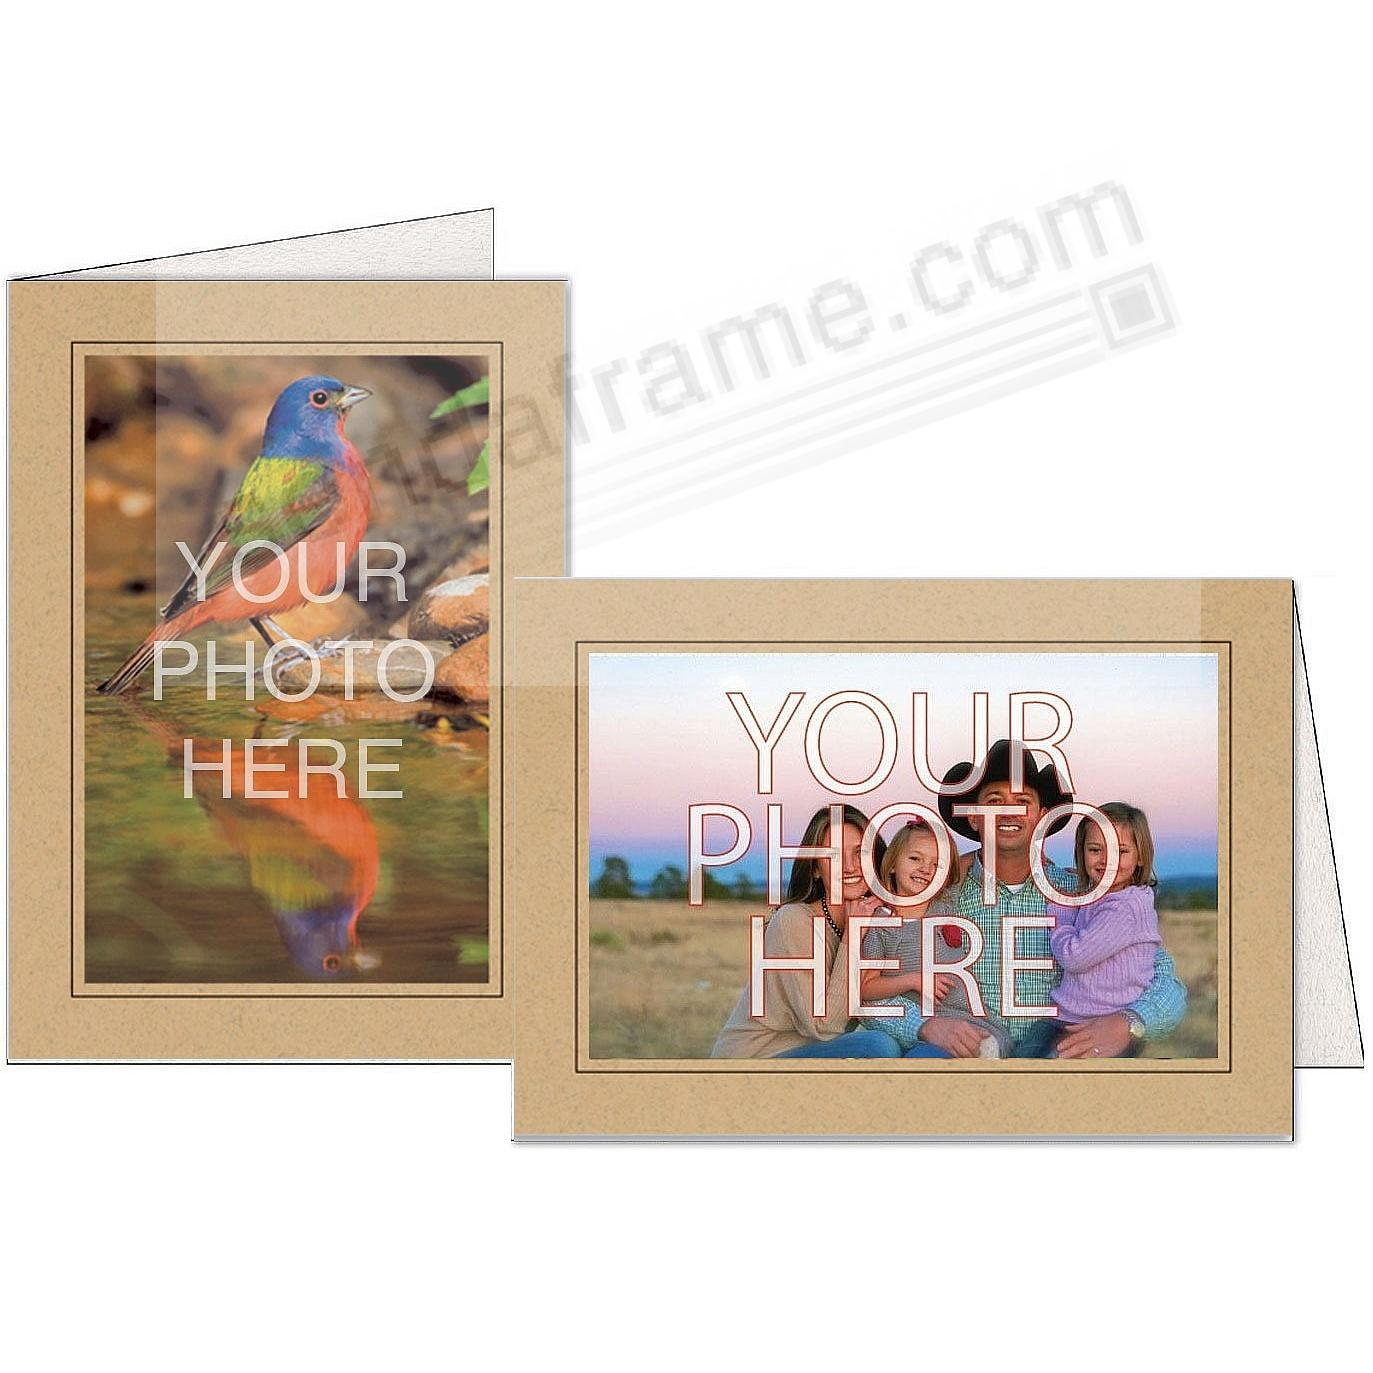 GINGER w/Black Trim Border Photo Insert Card (sold in 10s)